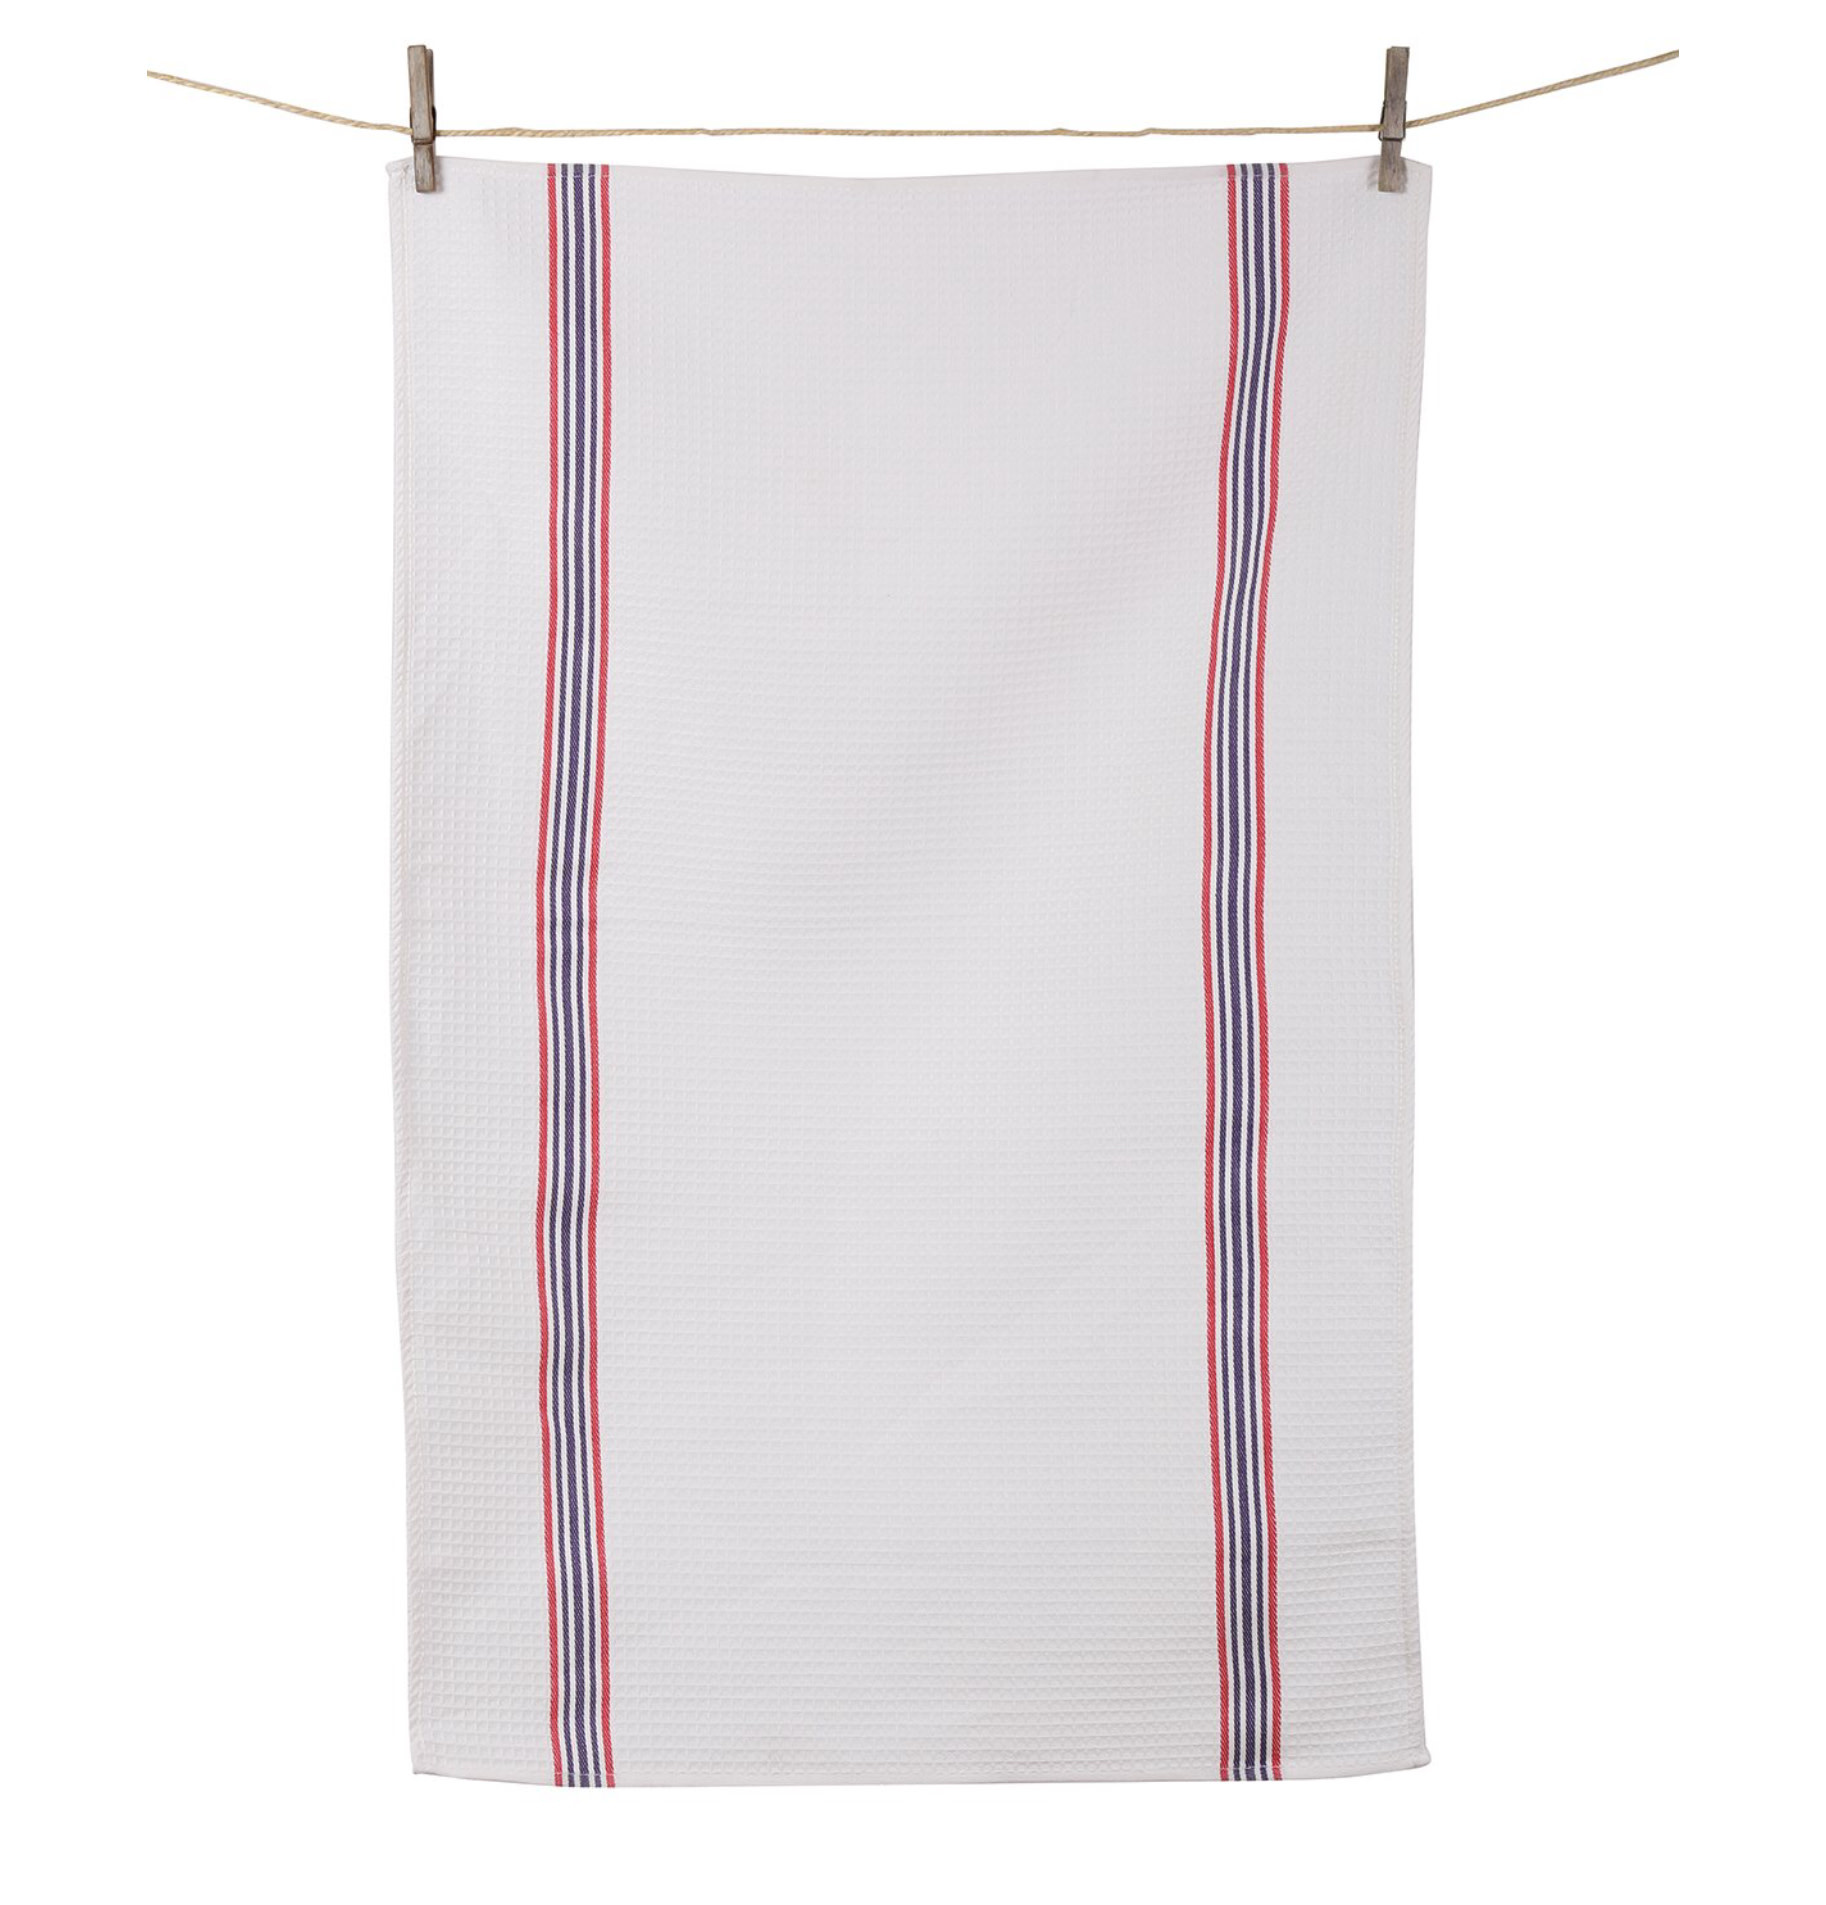 Tissage do L'Ouest French Dish Towel